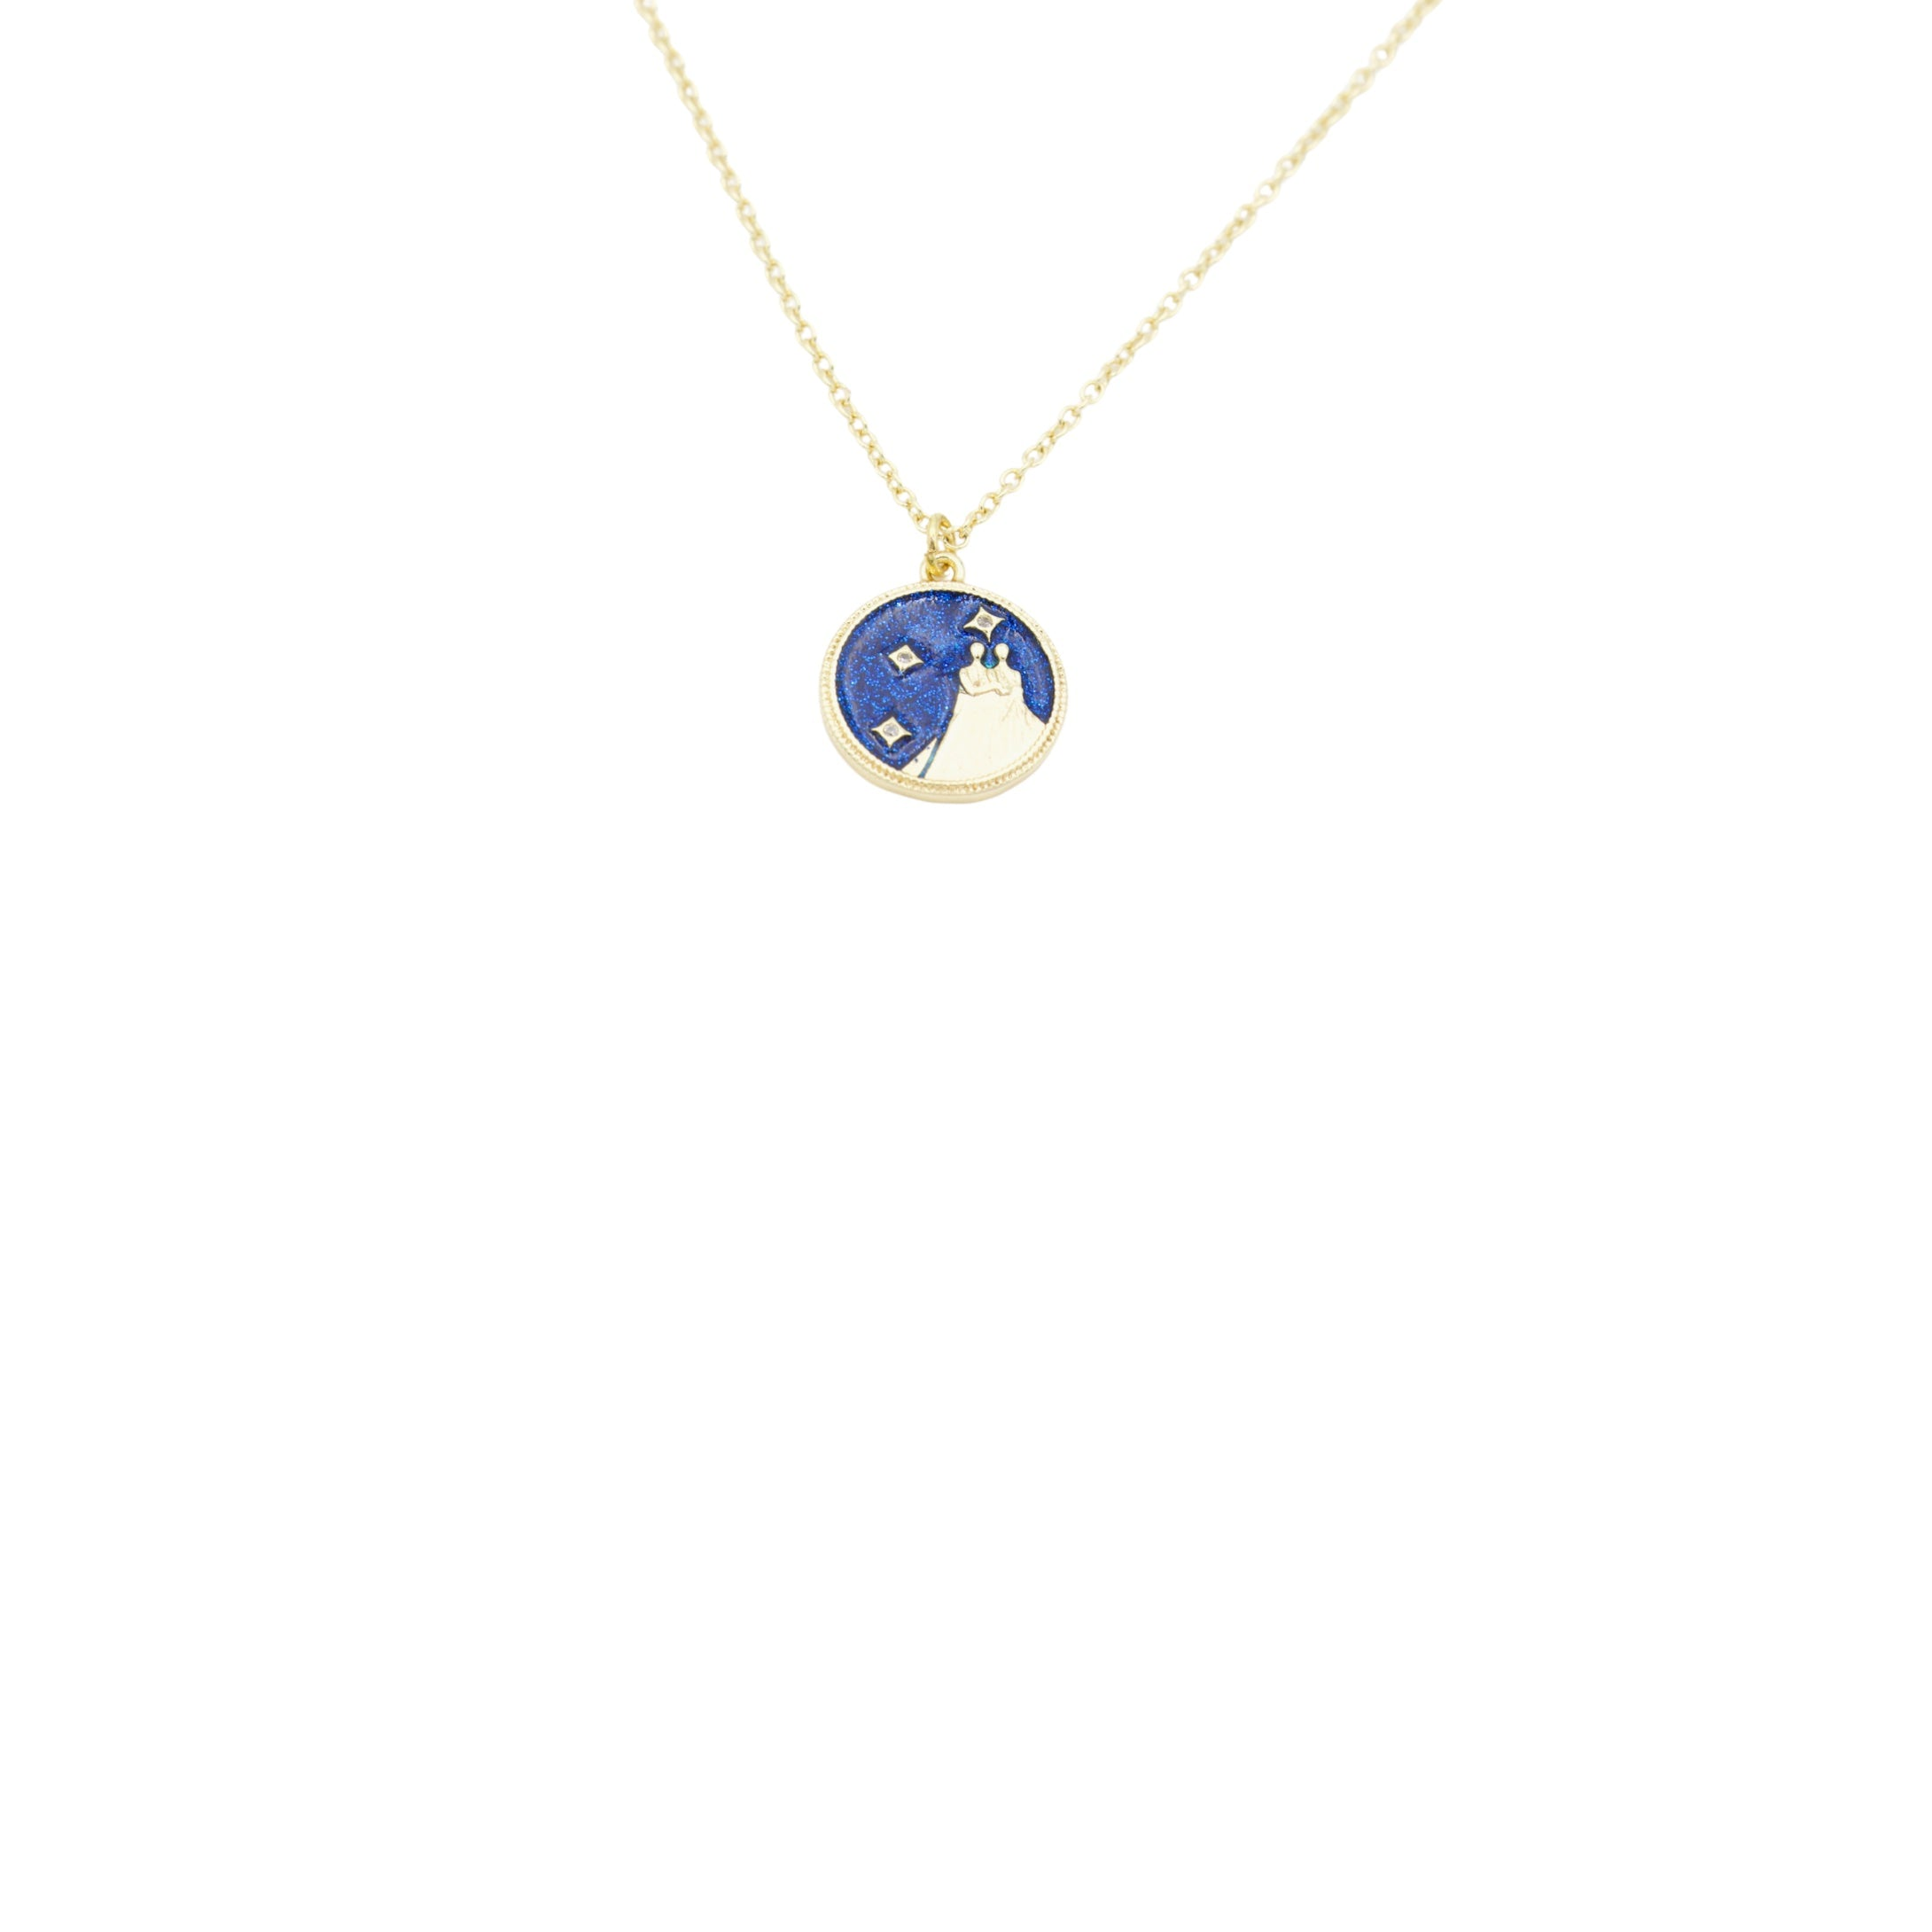 AW Boutique's Zodiac Astro Coin is a dainty pendant full of sparkle and shine.  This piece adds a pop of colour to your everyday wear and at 18 inches is a great length to mix and layer your other chains with.  Proudly wear either your own star sign or the star sign of a loved one close to your heart.  Zodiac shown is Gemini.